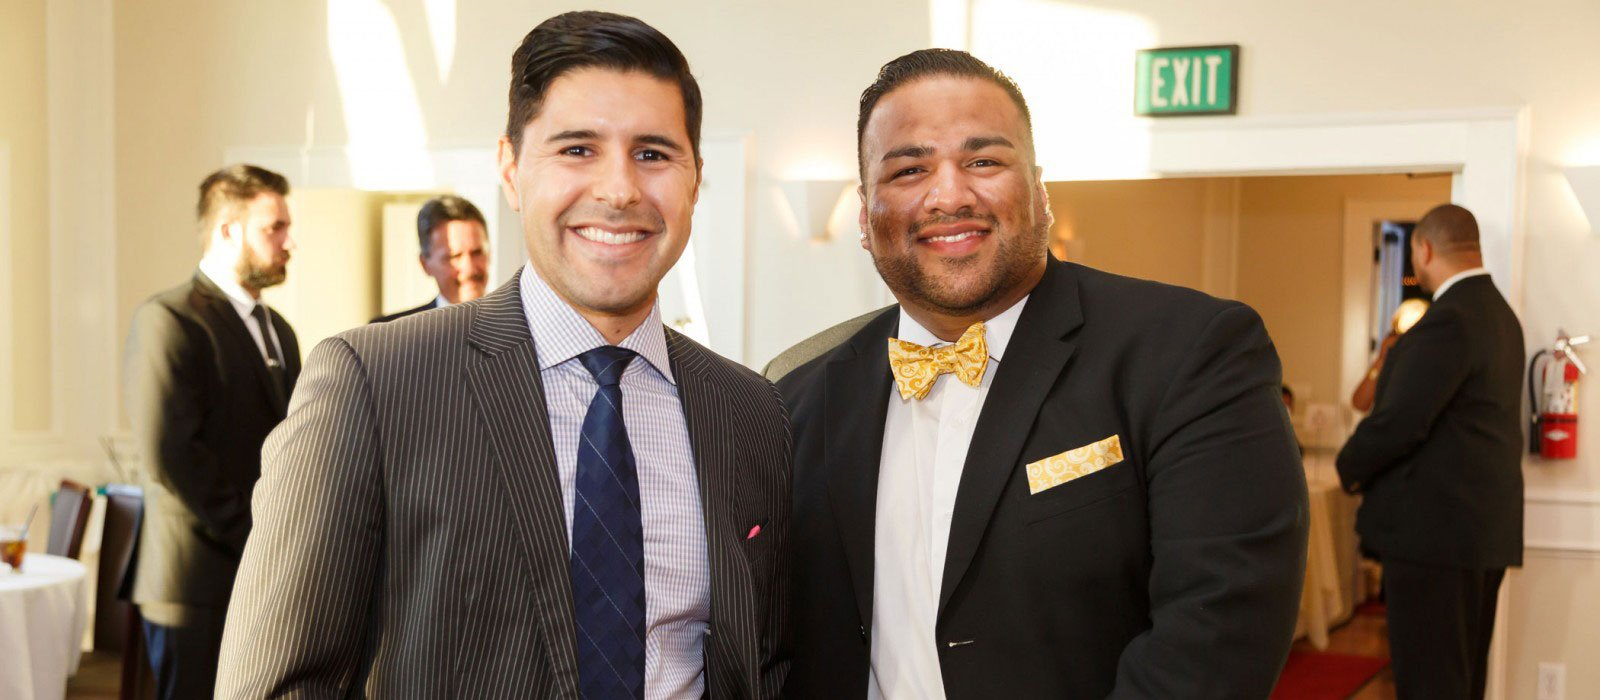 Kenny Salas & Camino Financial Business Partner